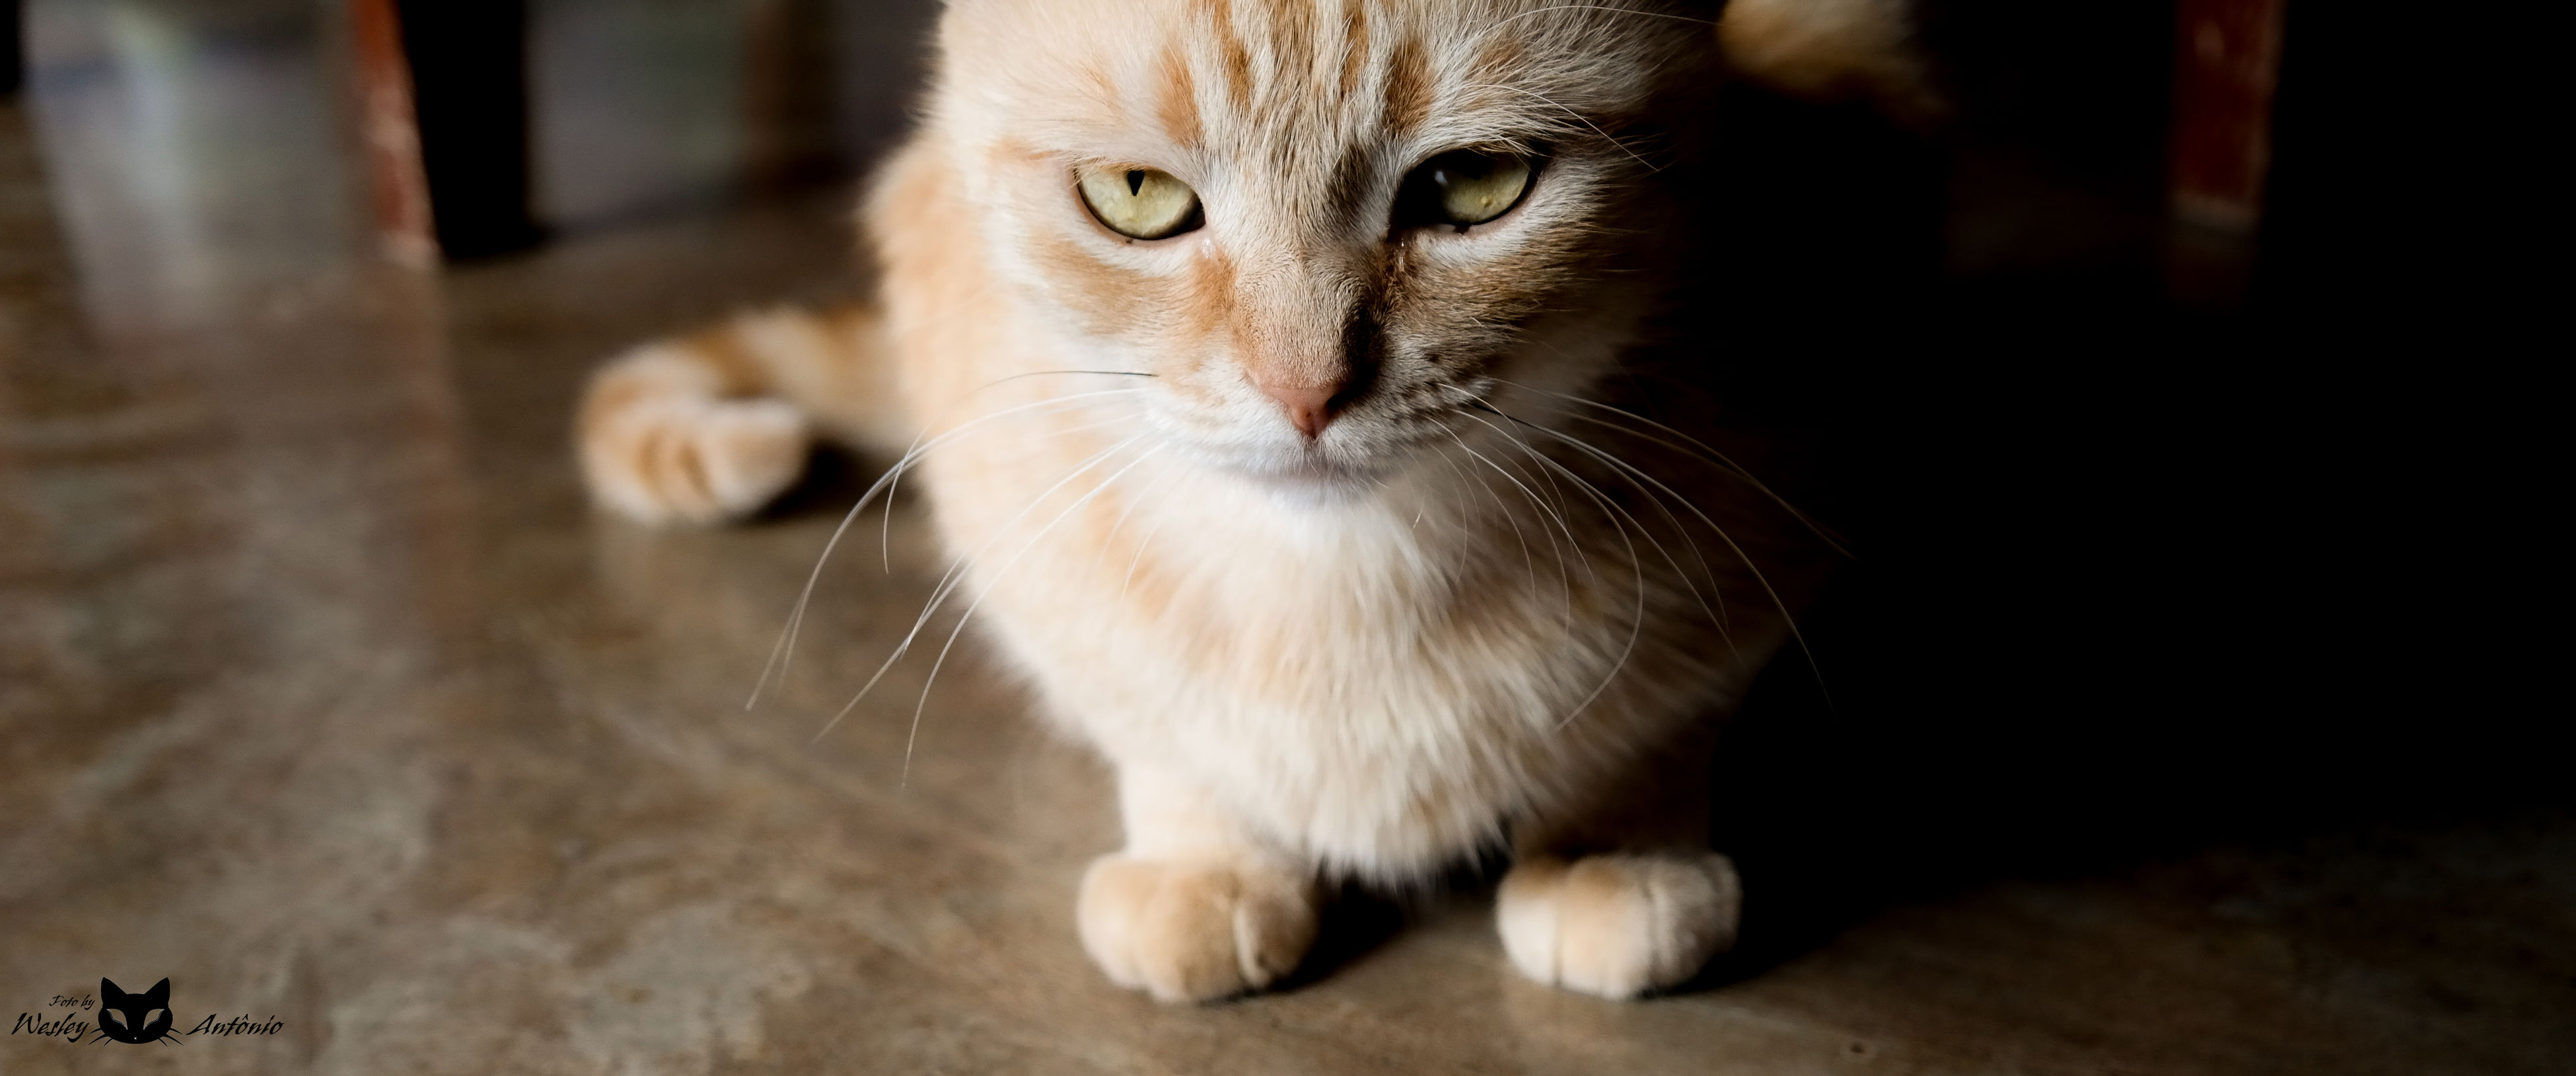 animal themes, one animal, pets, indoors, portrait, domestic cat, looking at camera, mammal, close-up, domestic animals, whisker, cat, focus on foreground, feline, sitting, alertness, no people, selective focus, animal eye